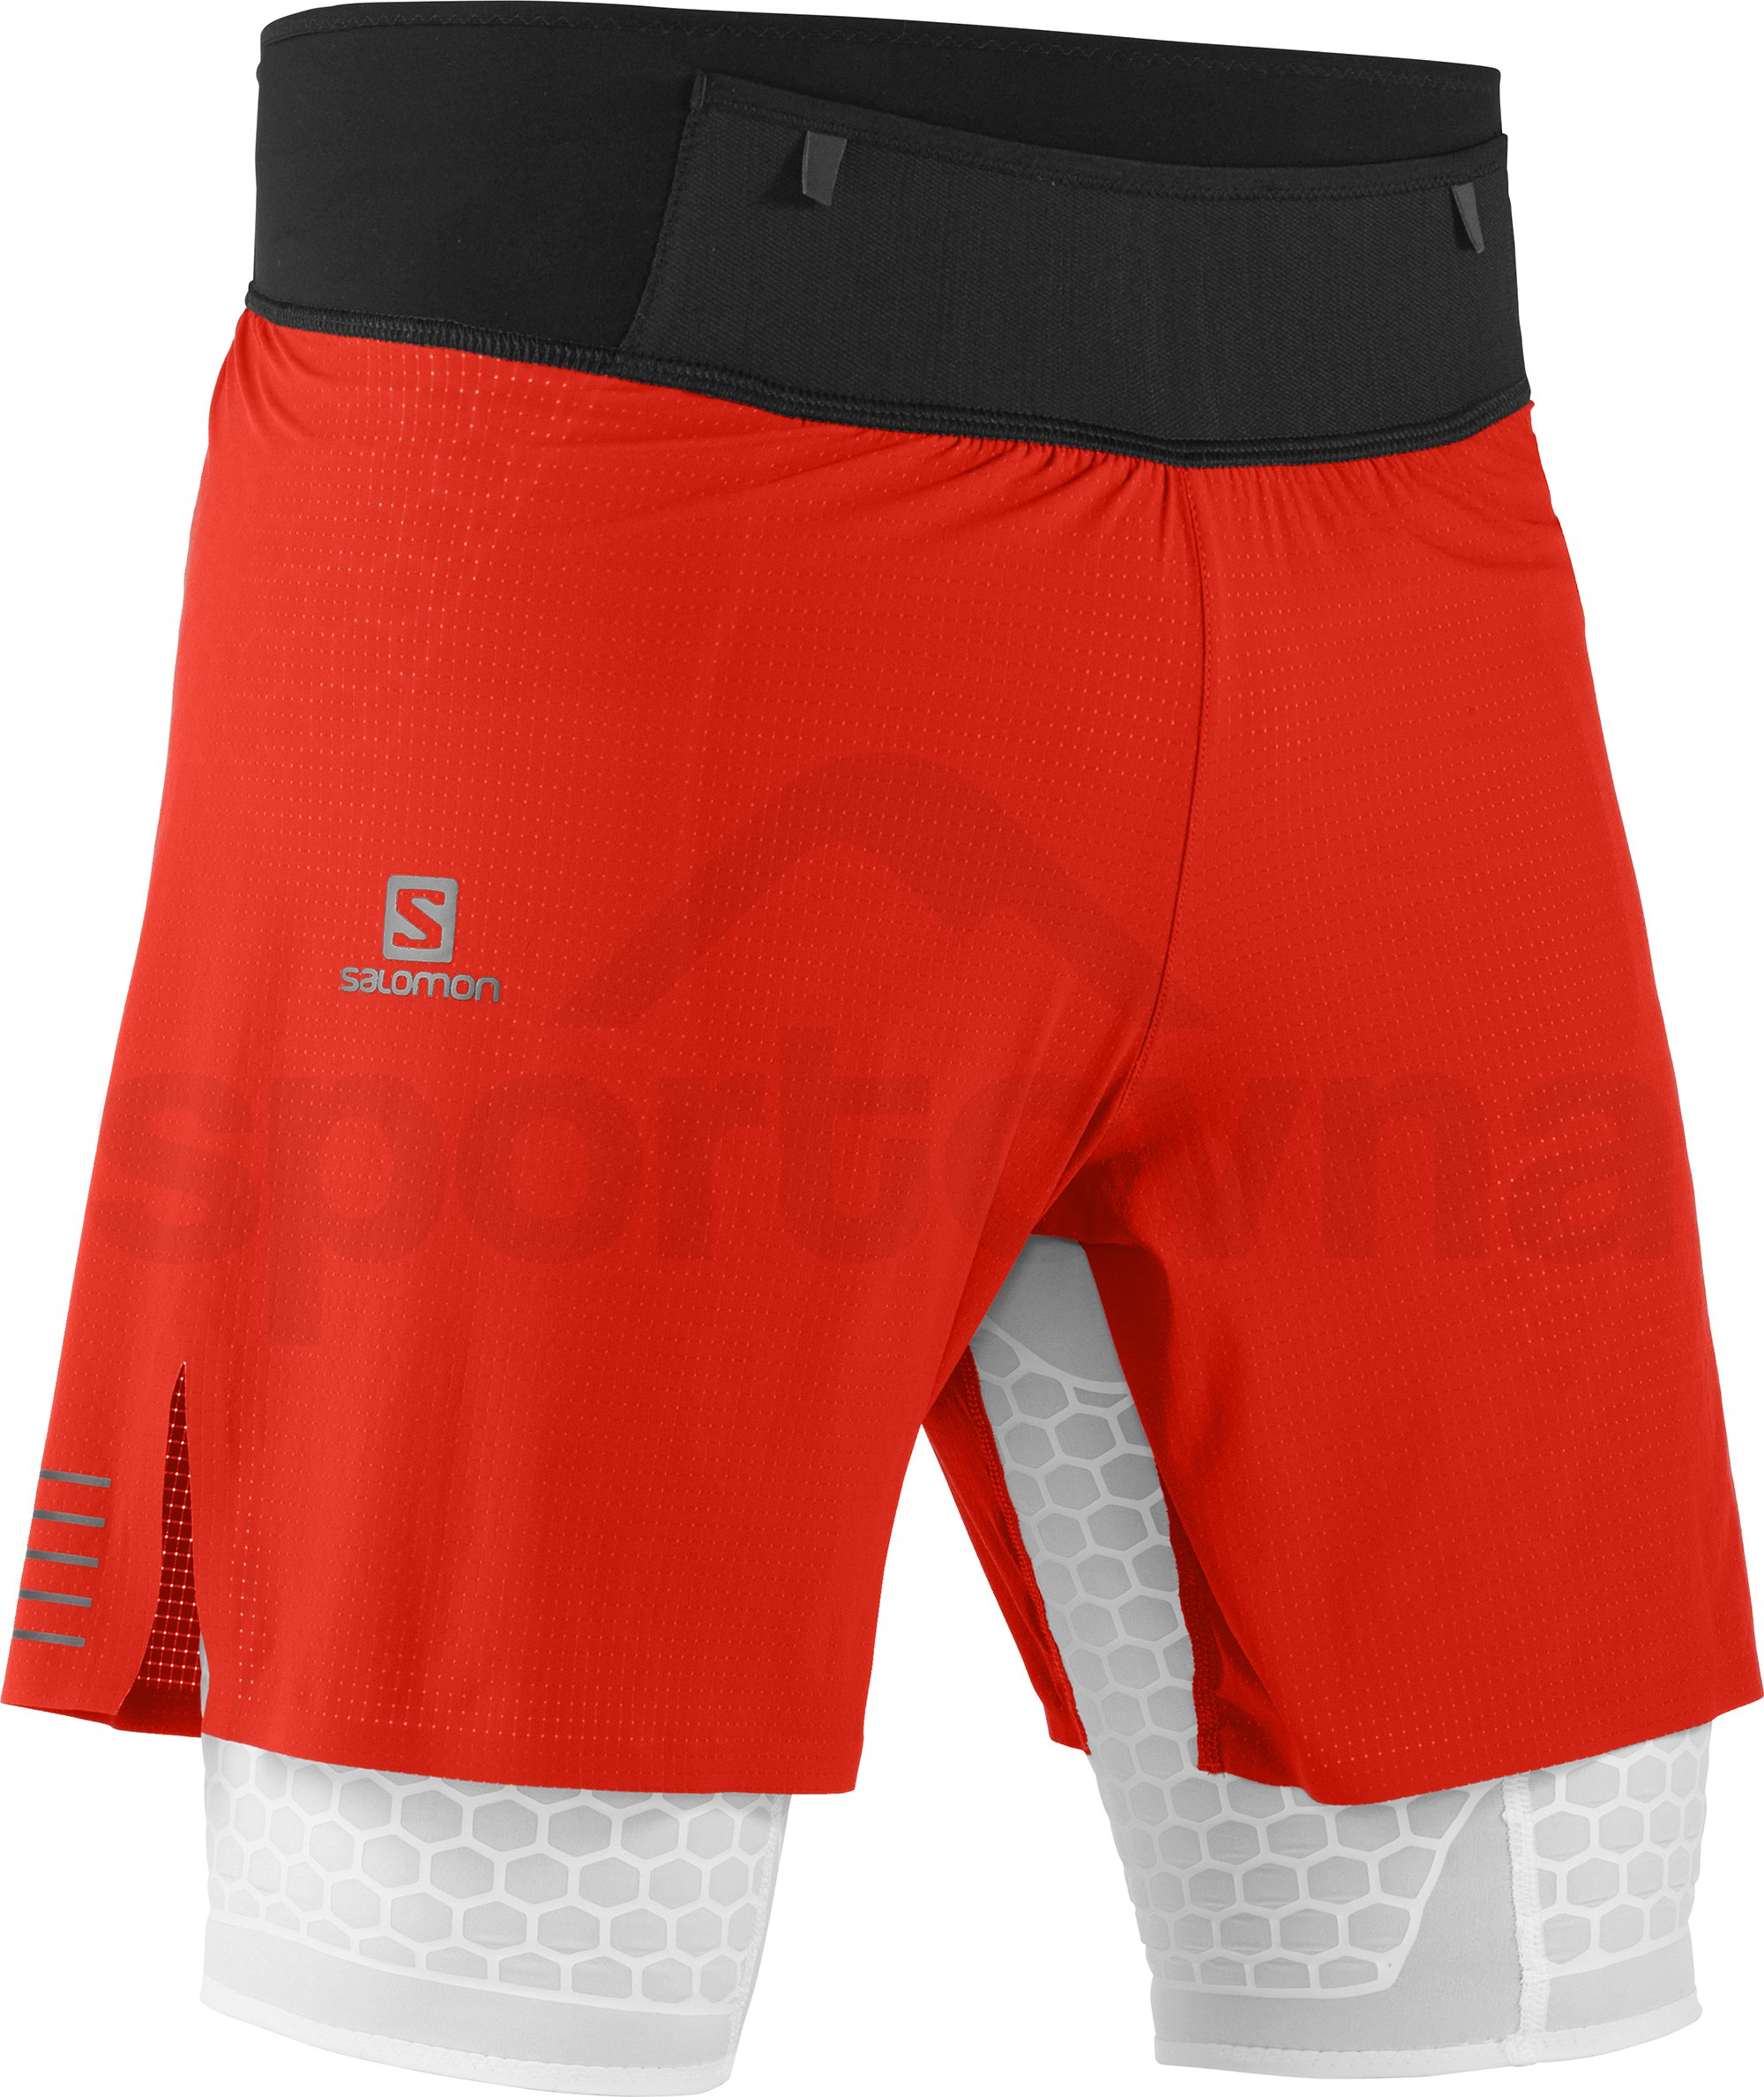 LC1046100_2_m_exotwinskinshort_fieryred_run.jpg.originaln